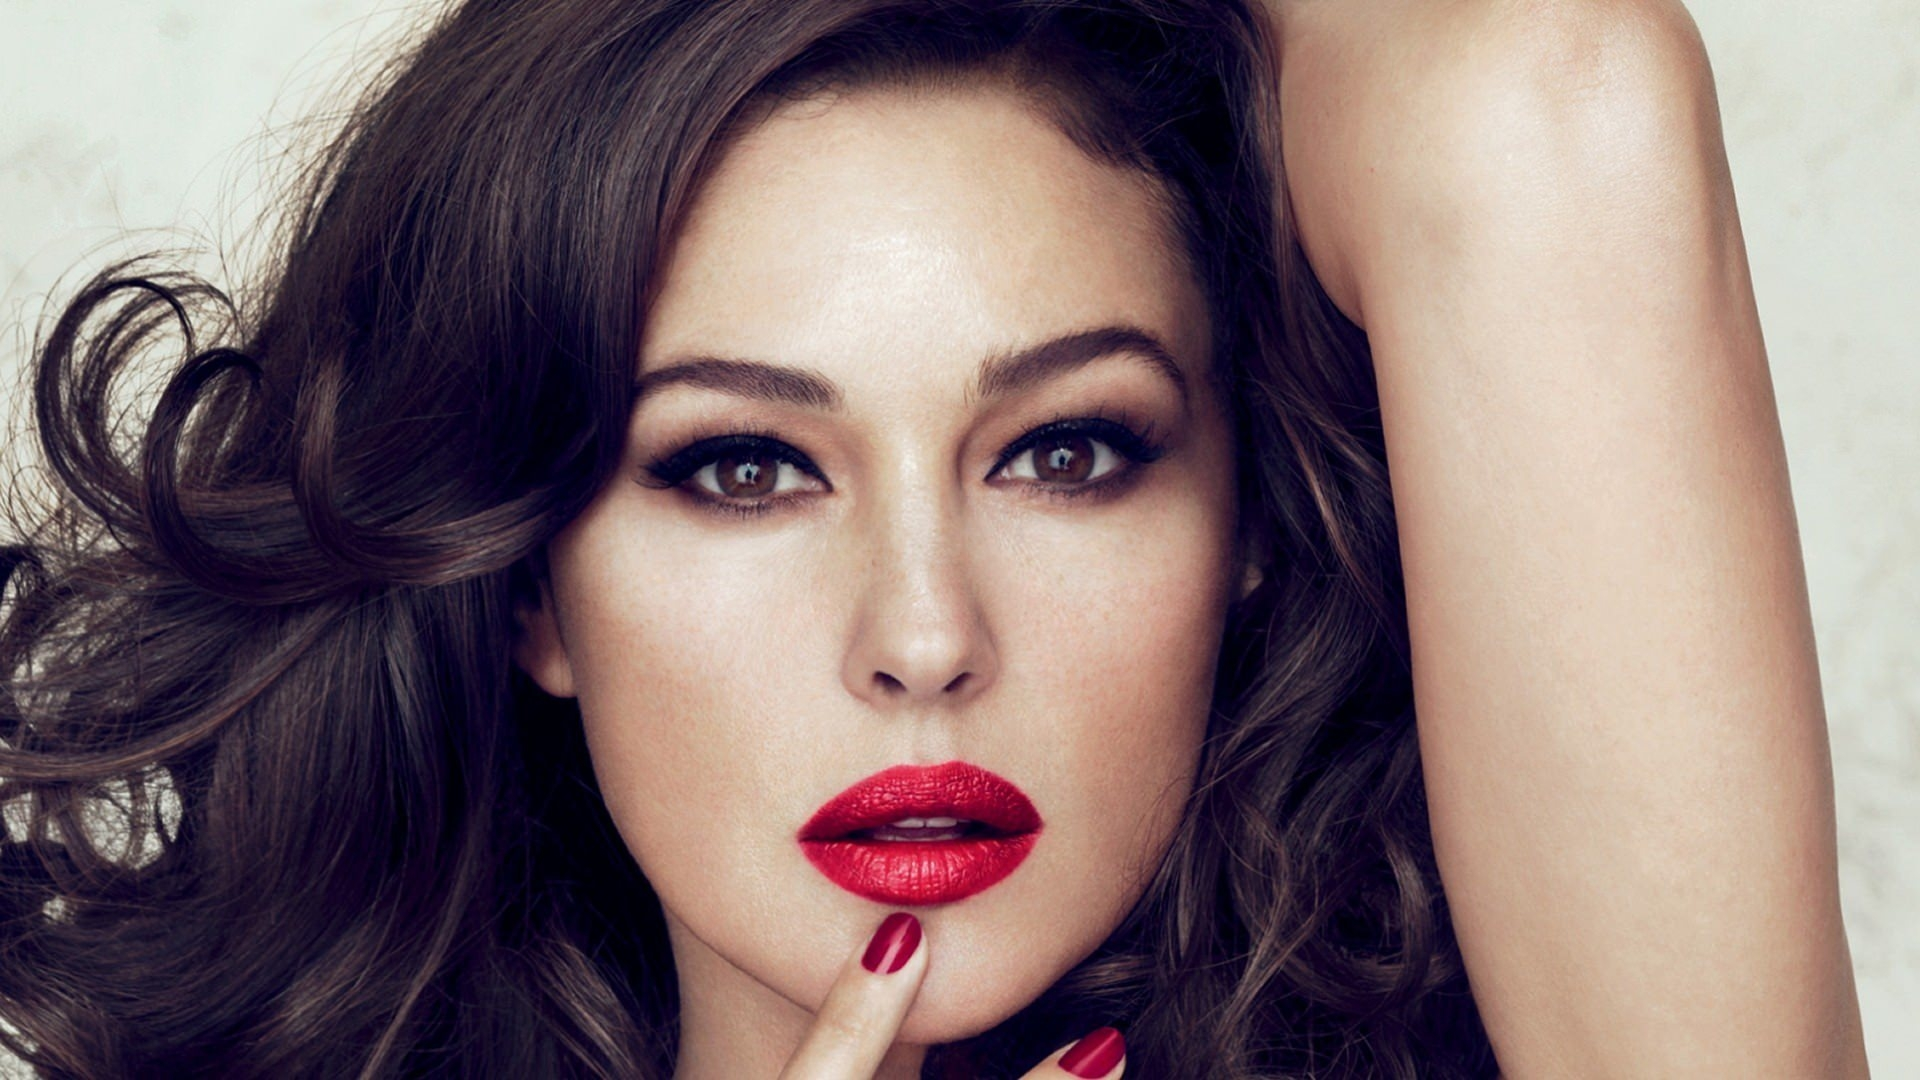 Red Lips Girly Brunette Wallpaper